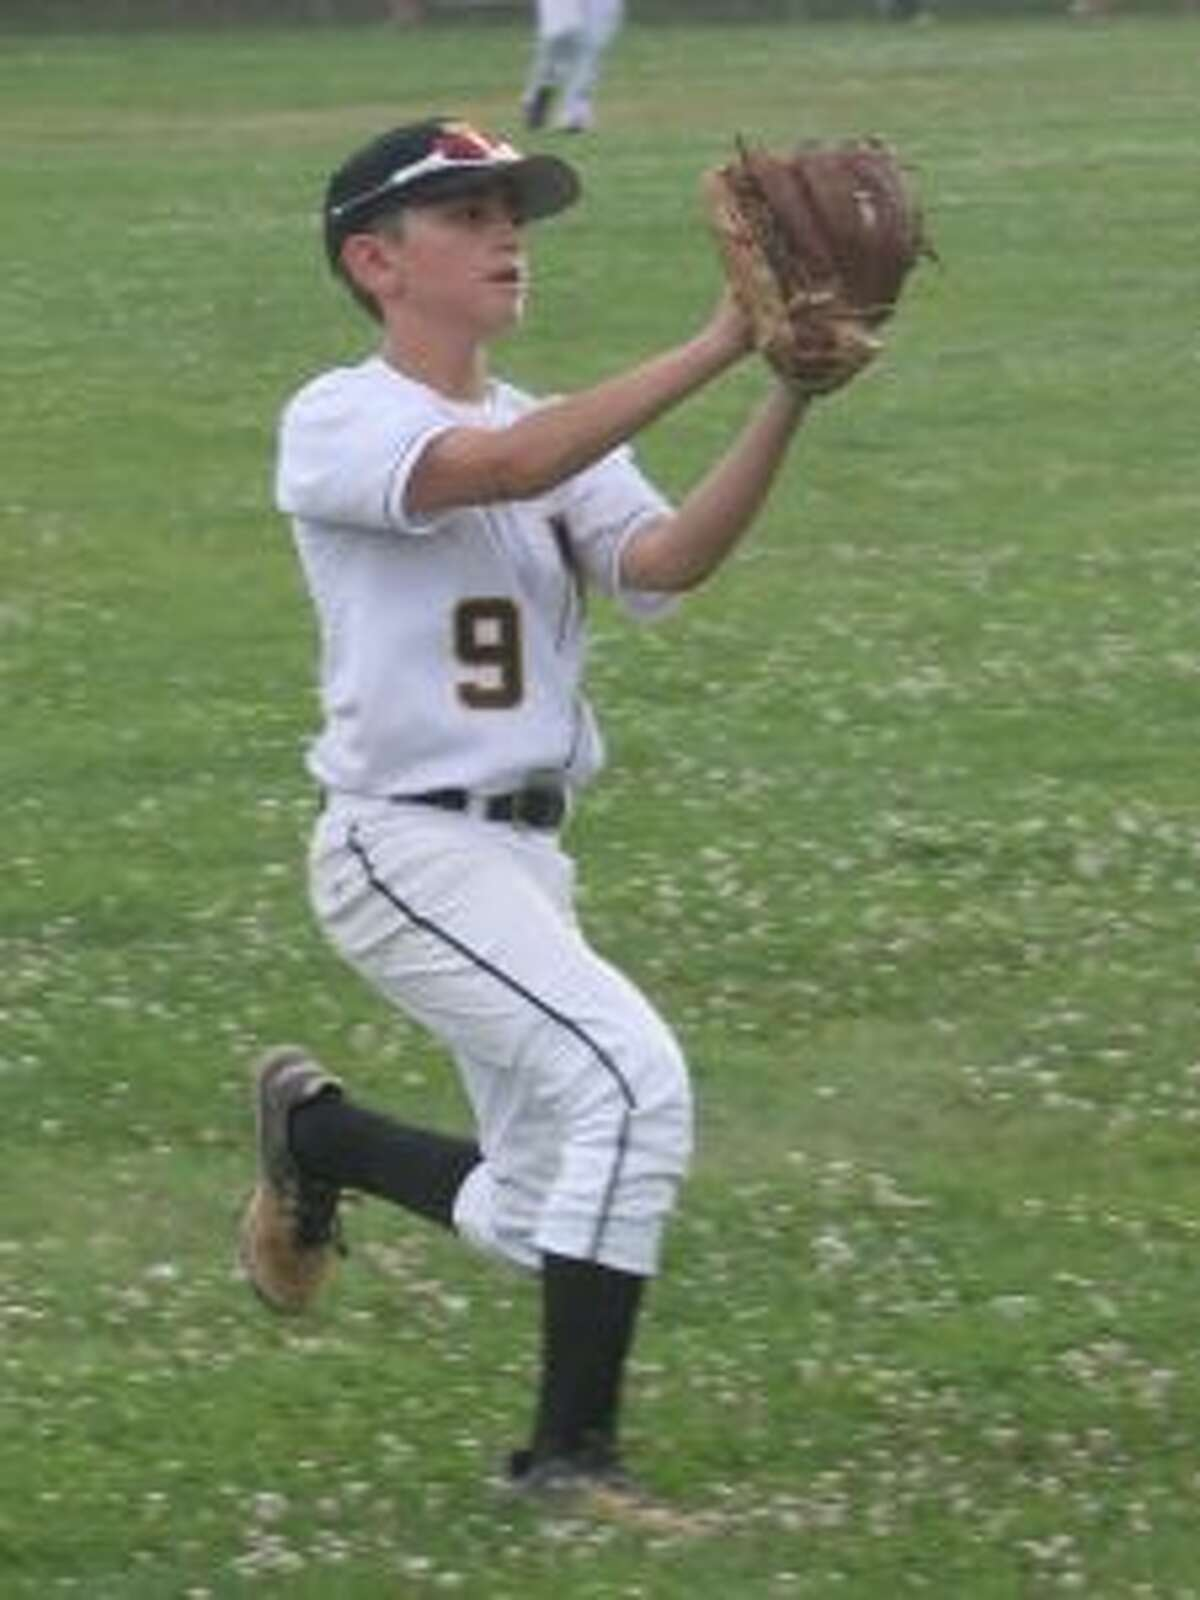 Trumbull's Jackson DePino makes this over the shoulder catch in the in the third inning.